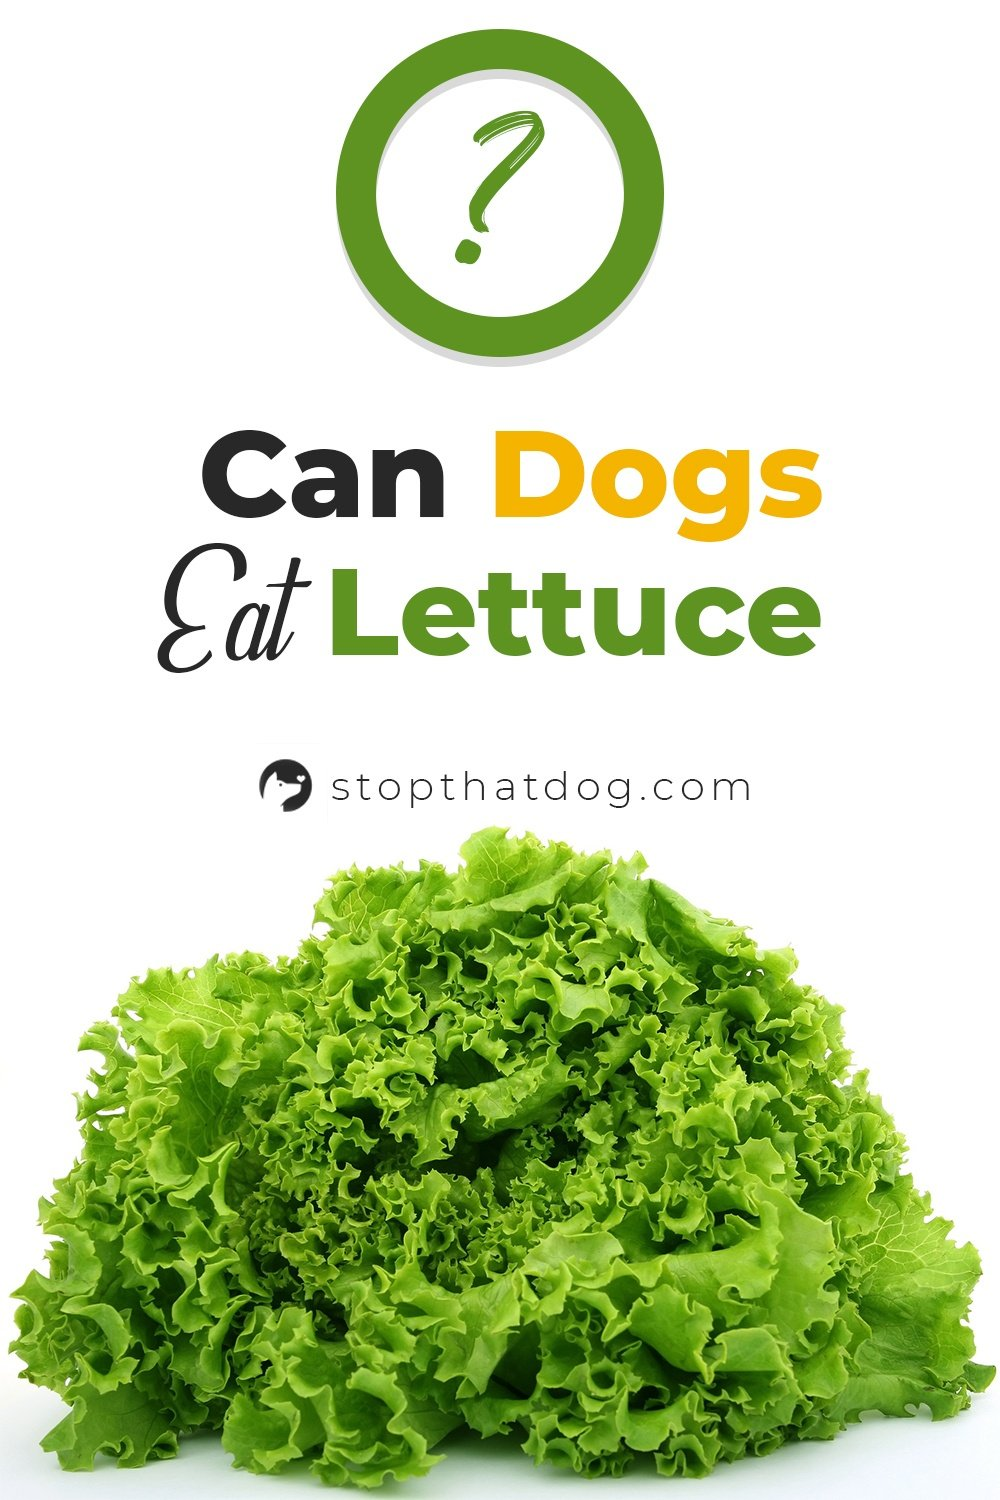 Can Dogs Eat Lettuce? Here's What You Should Know